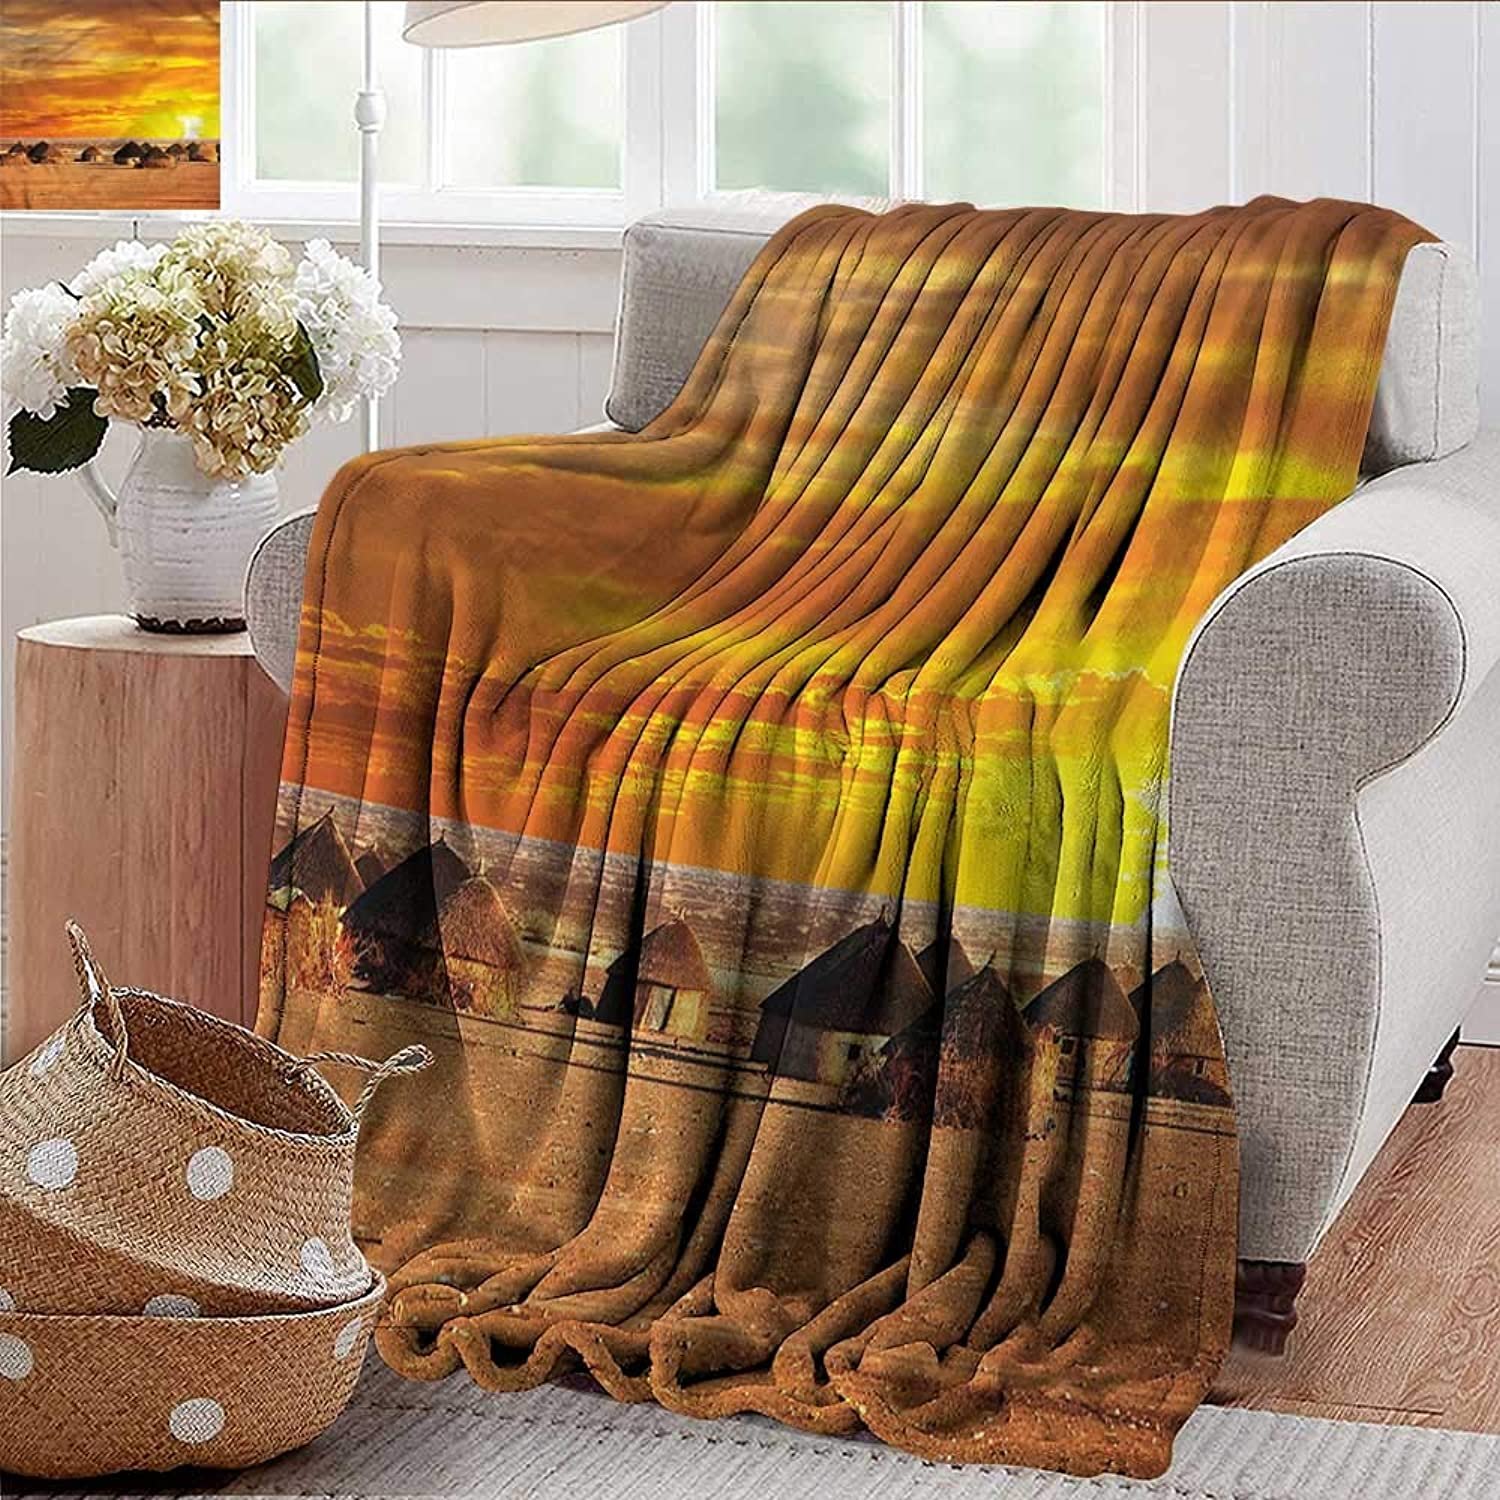 Xaviera Doherty Summer Blanket African,African Landscape Weighted Blanket for Adults Kids, Better Deeper Sleep 35 x60